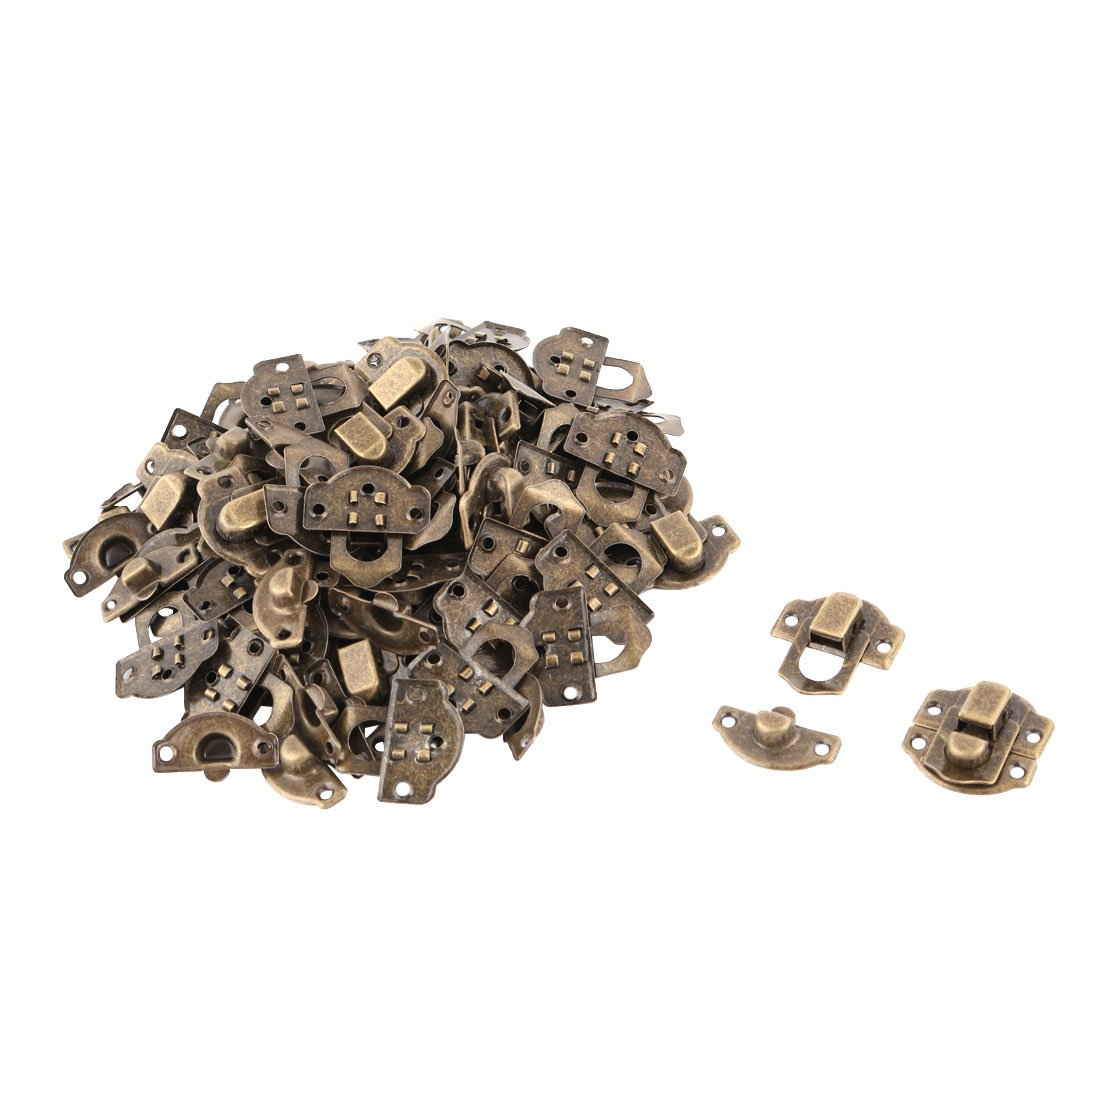 uxcell Metal Home Bag Hasp Box Luggage Case Latch Buckle Hook Lock 50pcs Bronze Tone